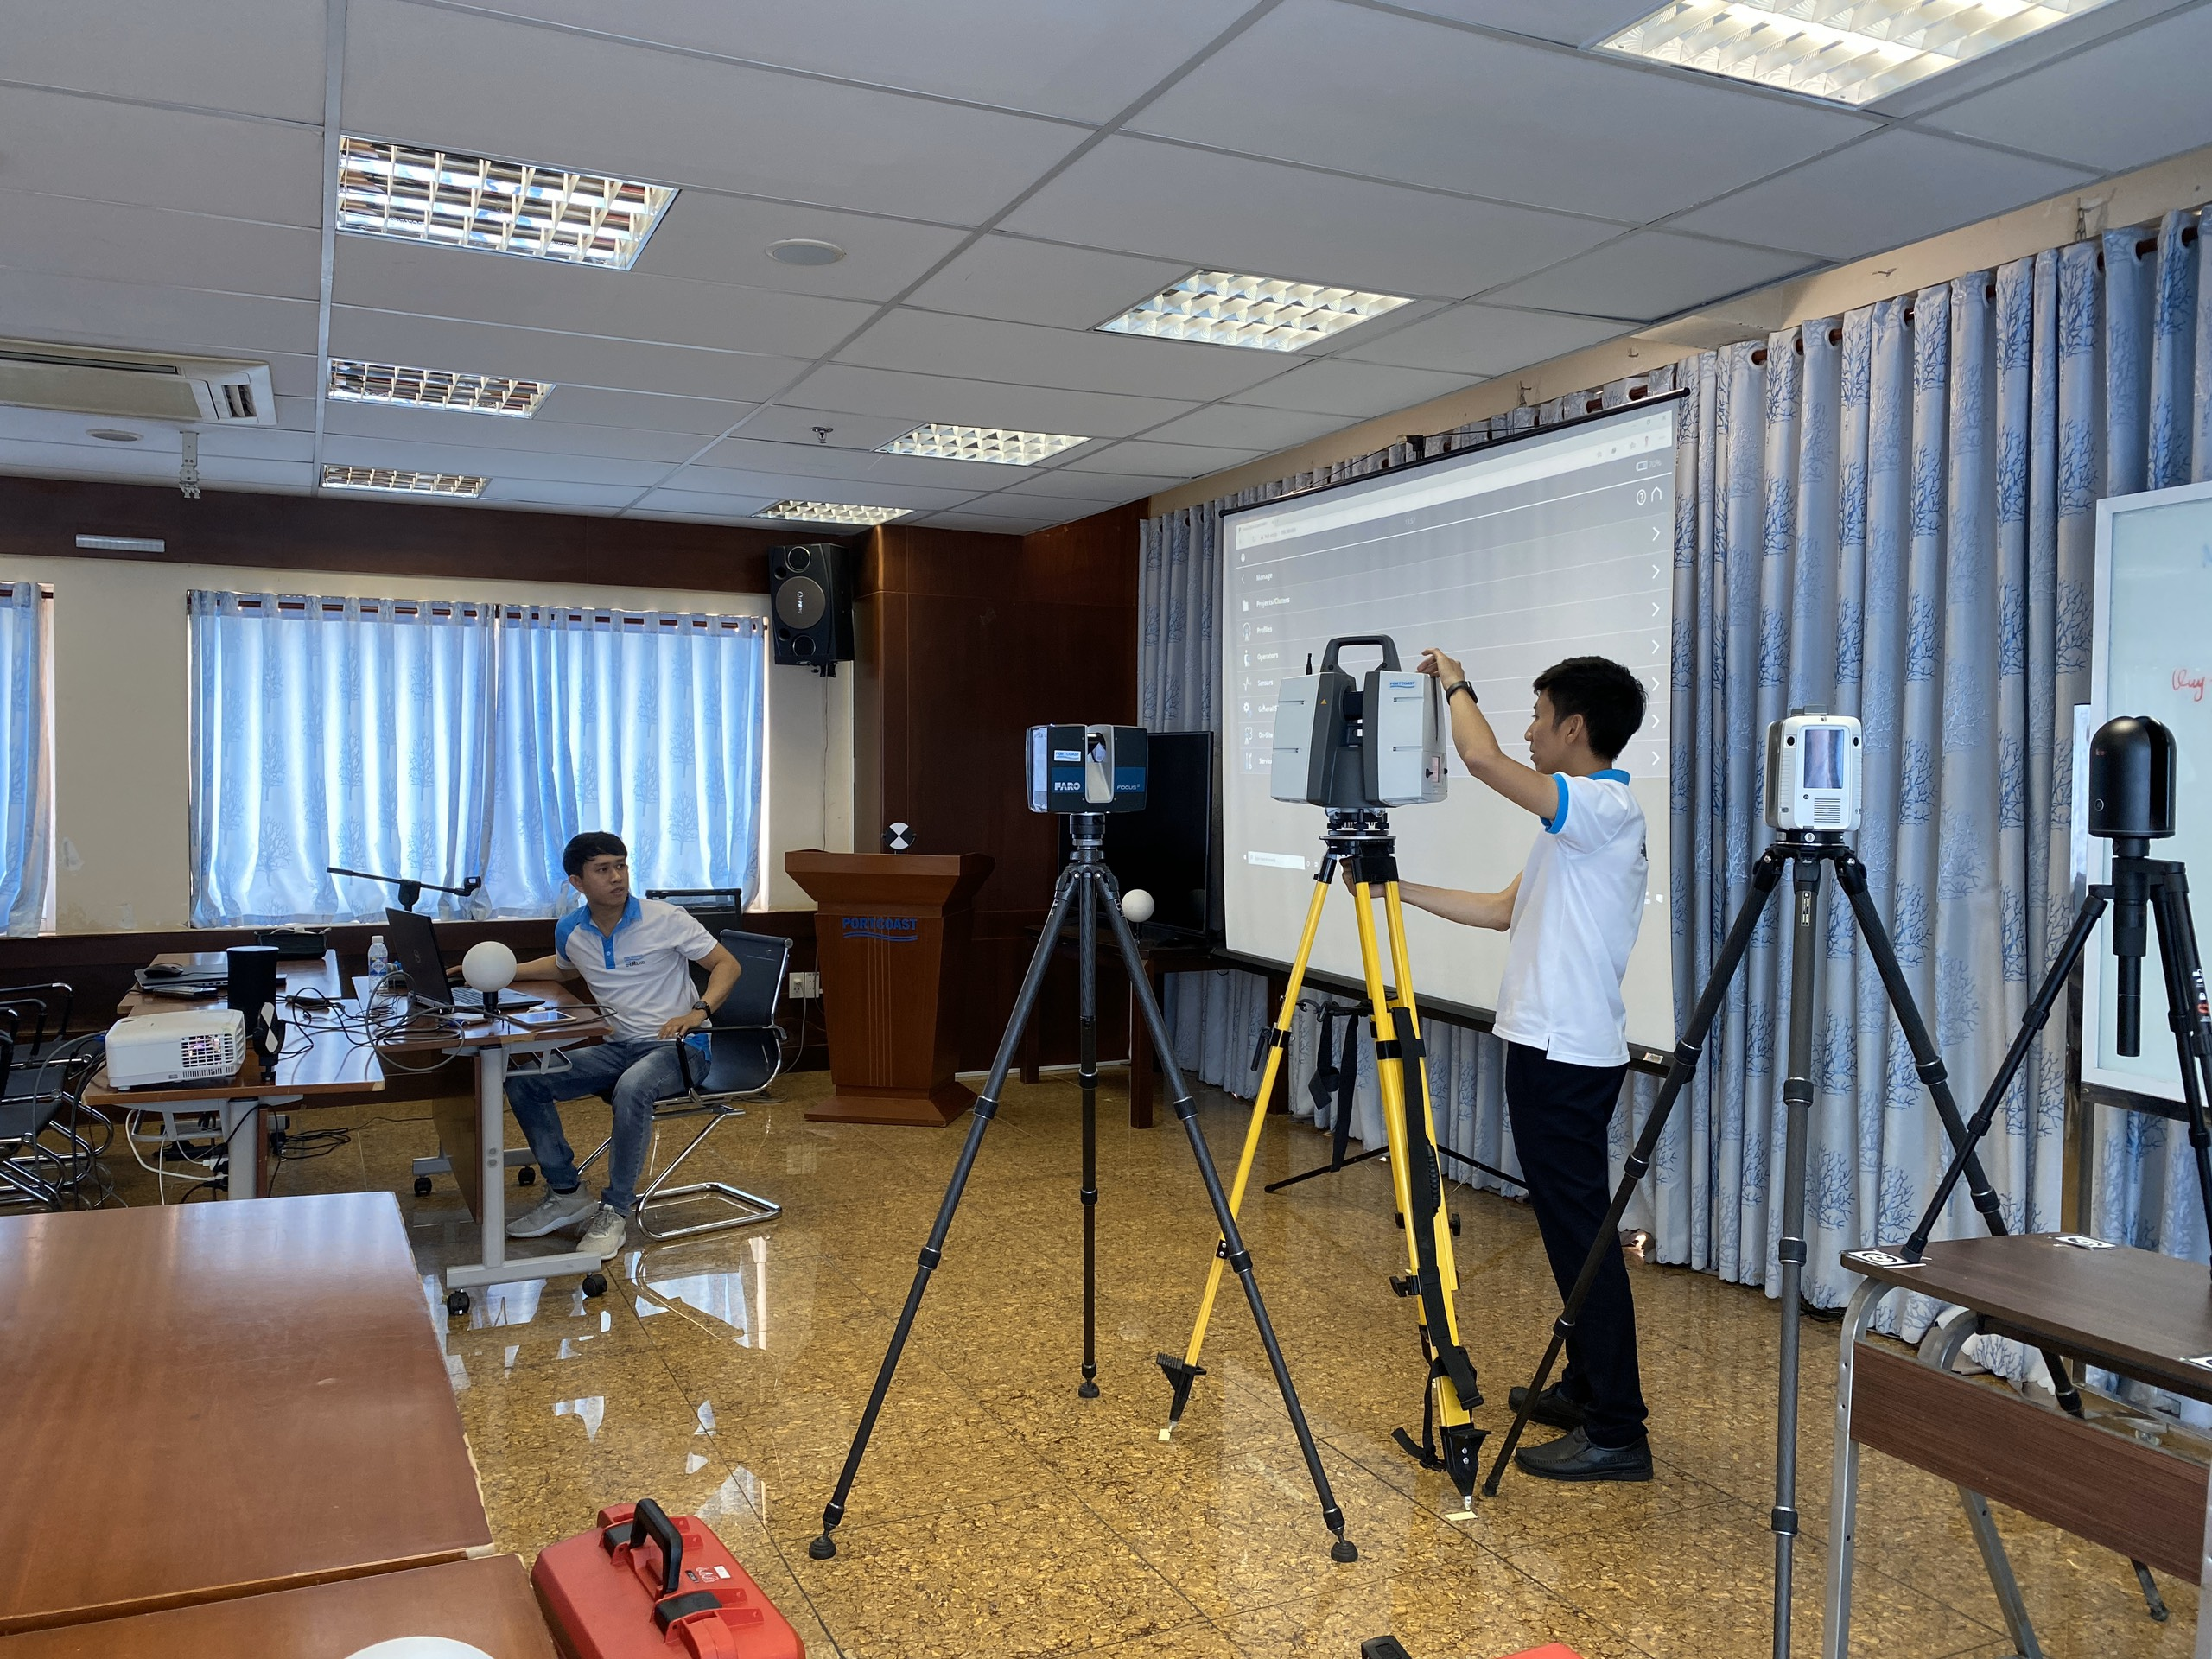 Mr. Phuoc and Mr. Truong coordinate instructions on manipulating assembly and use of laser scanning function of 4 types of the most modern laser scanner